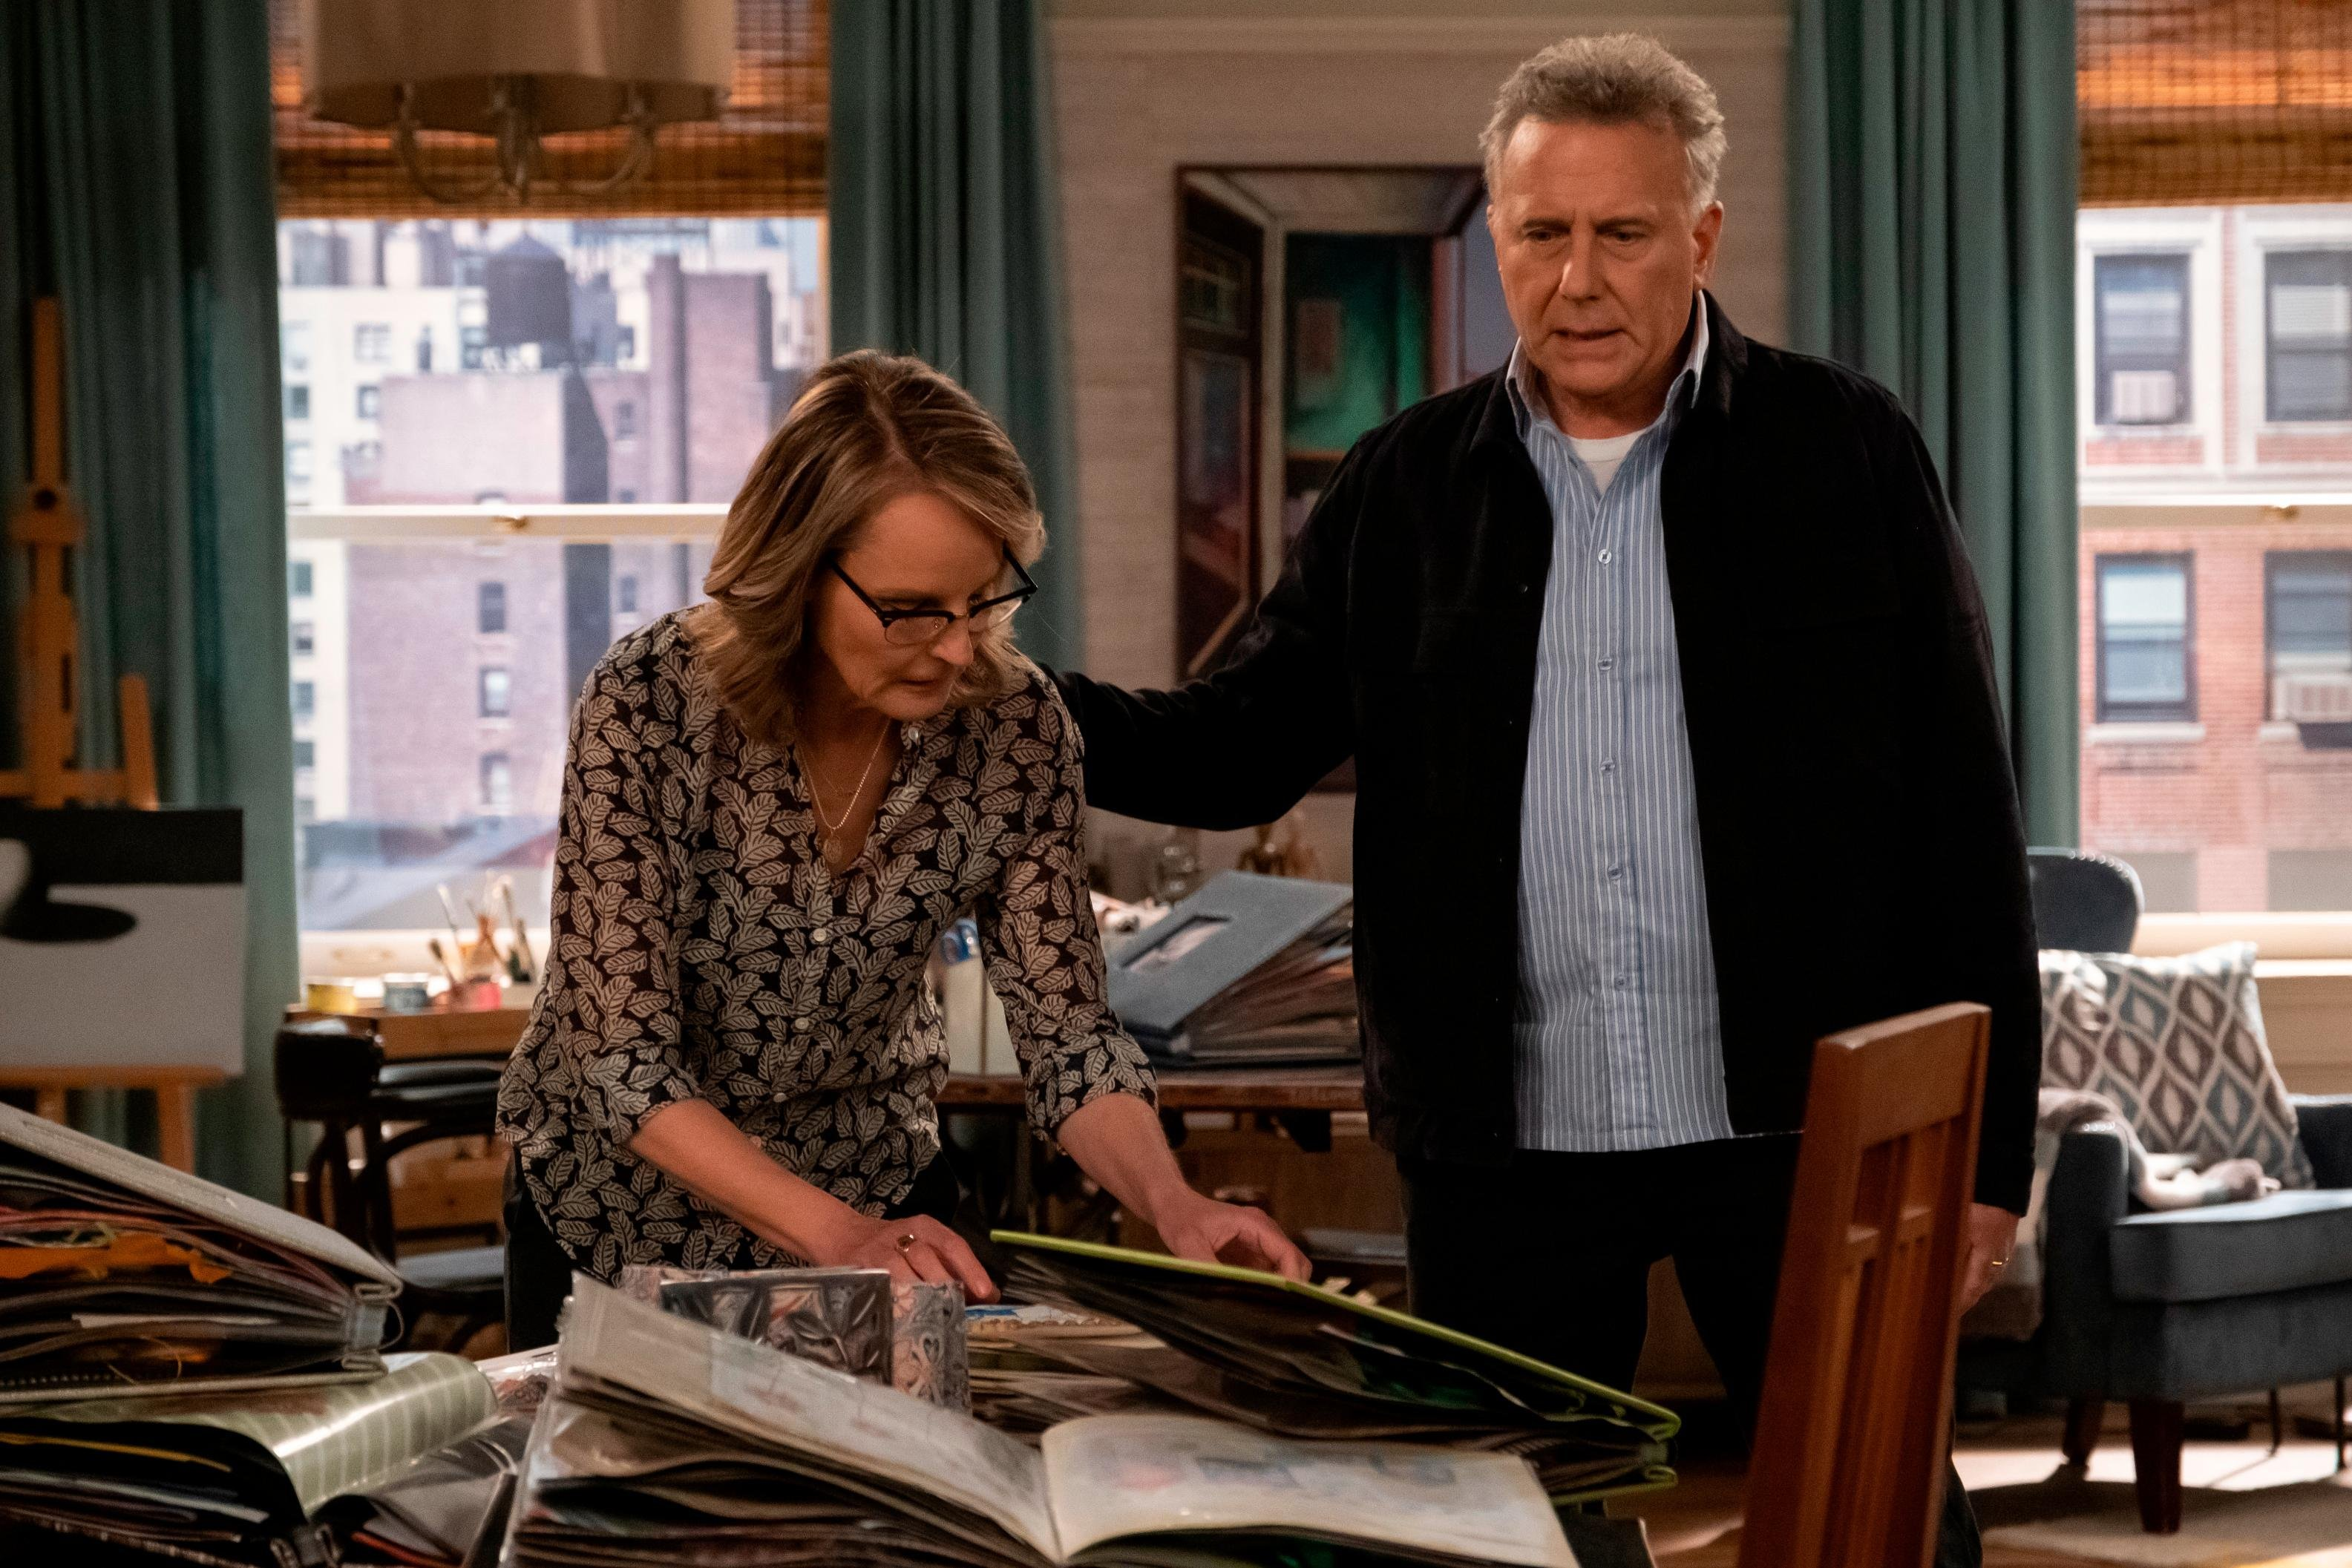 'Mad About You' reunites Paul Reiser and Helen Hunt as empty nesters